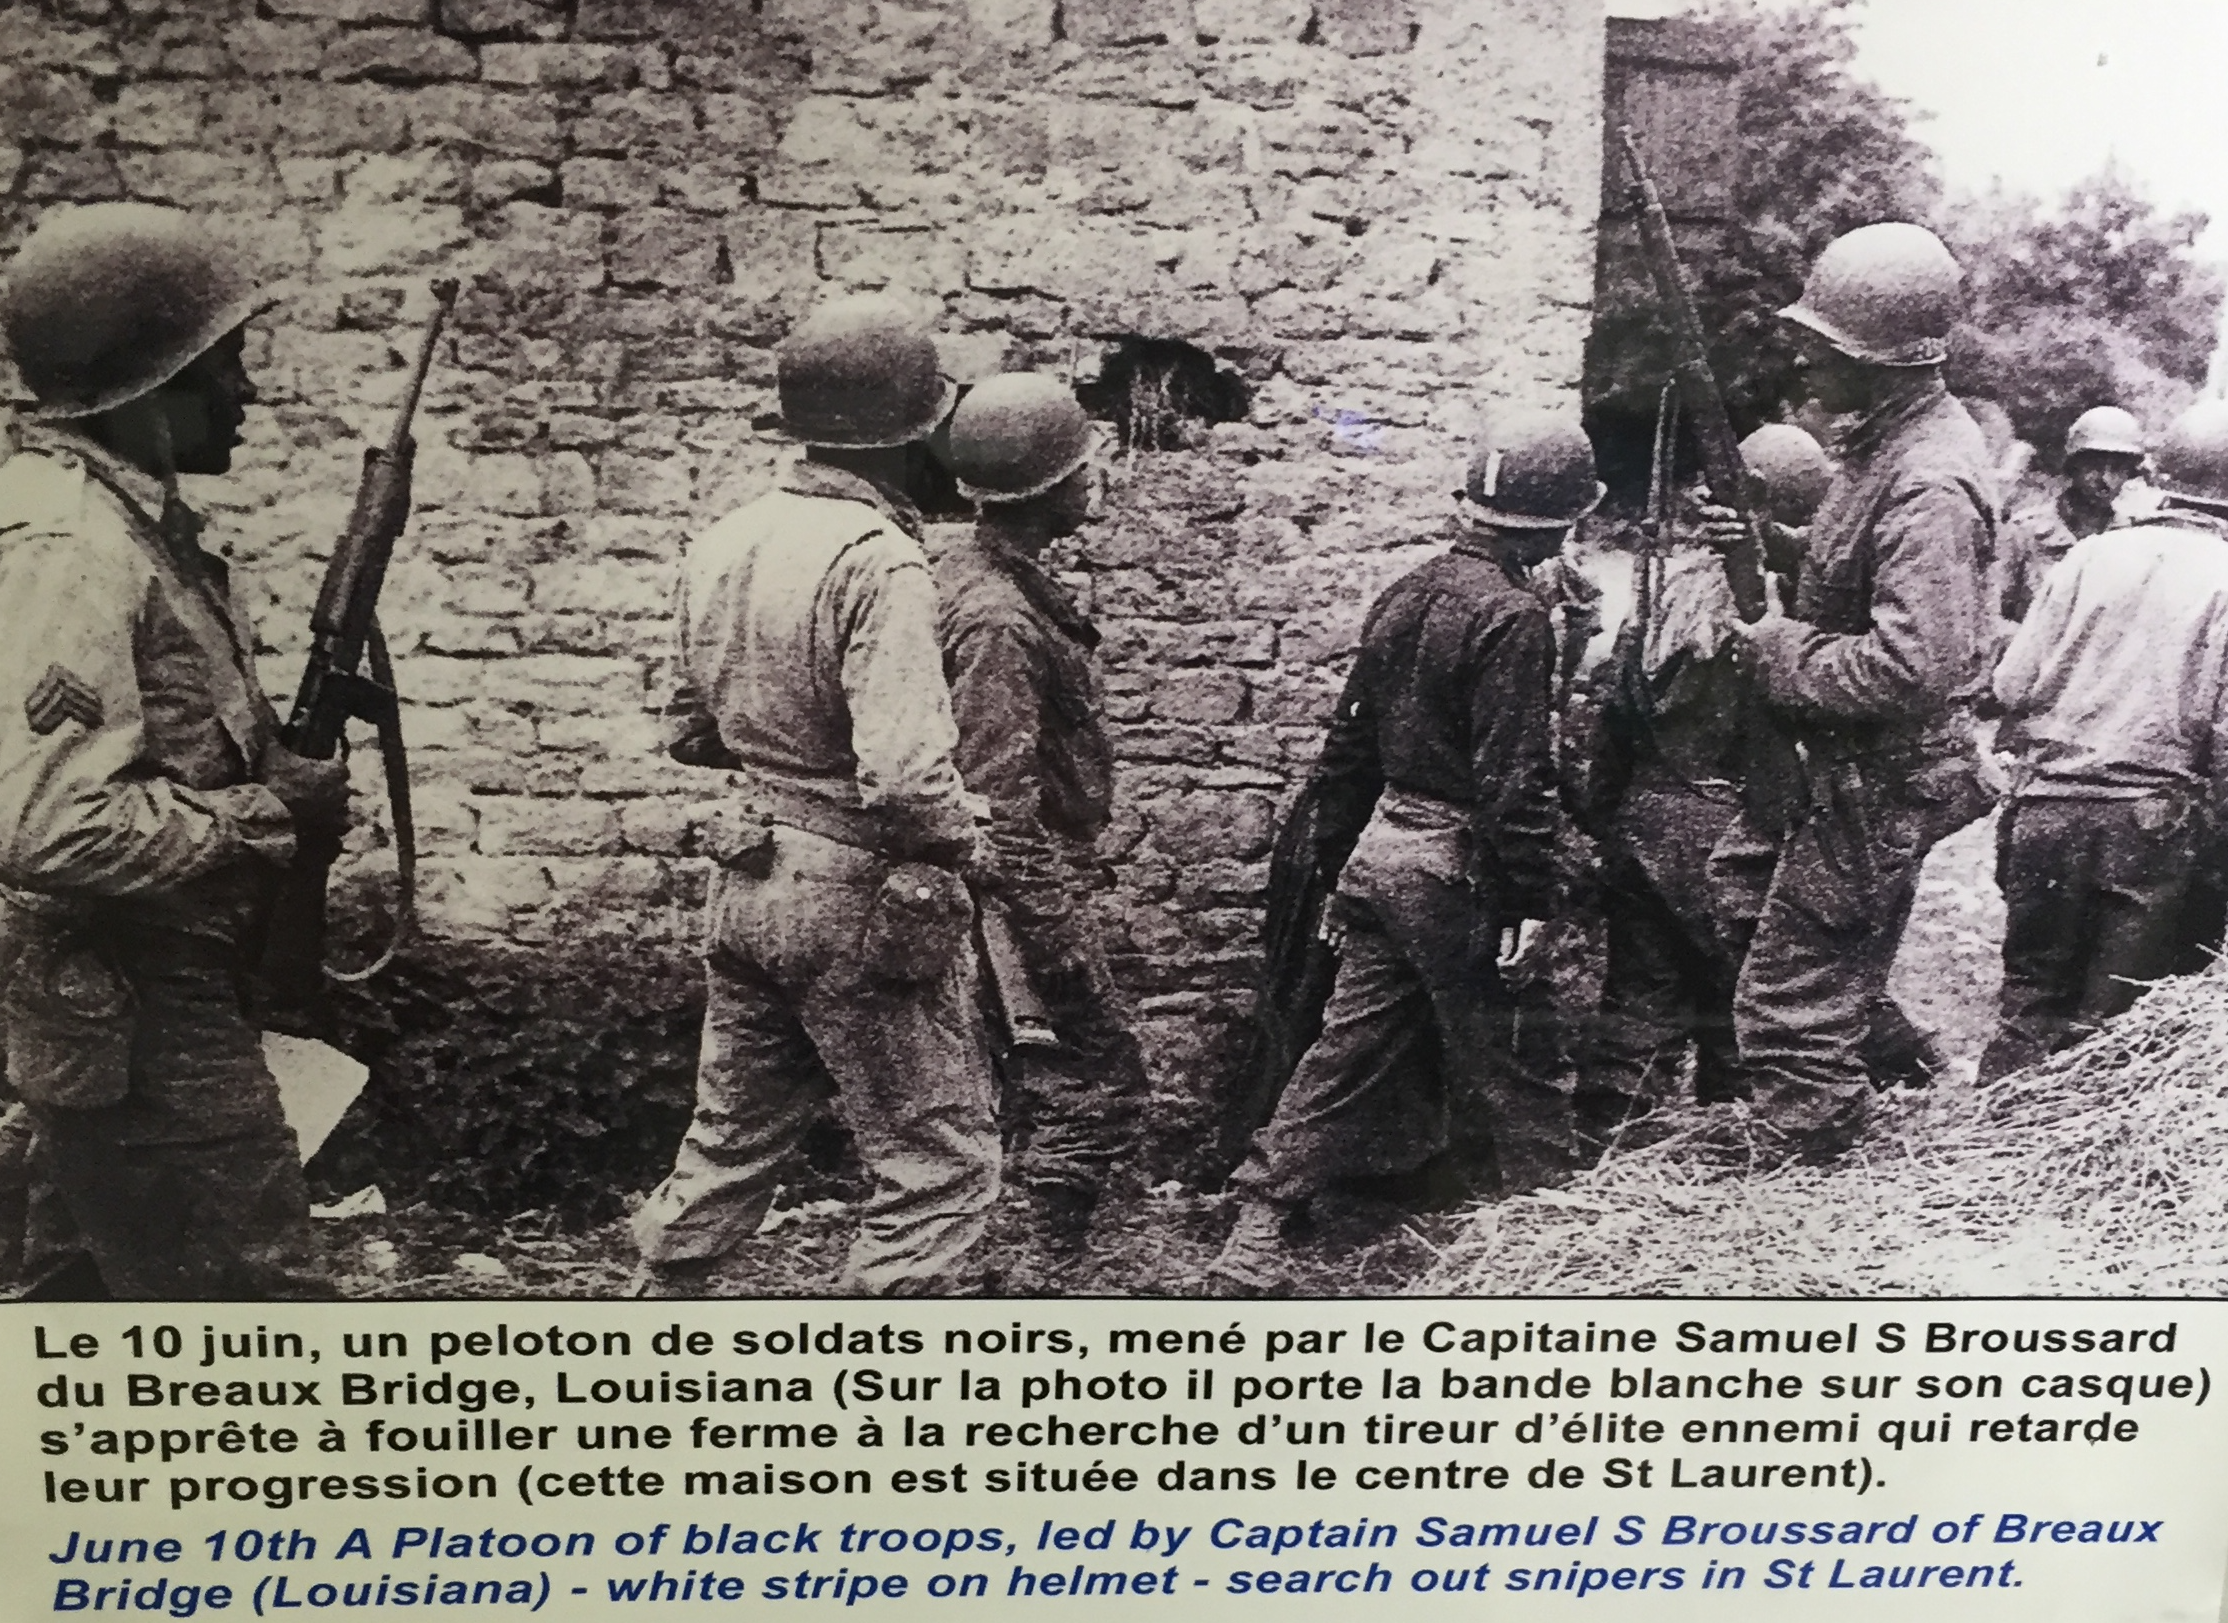 One of the few mentions of black soldiers in Normandy.